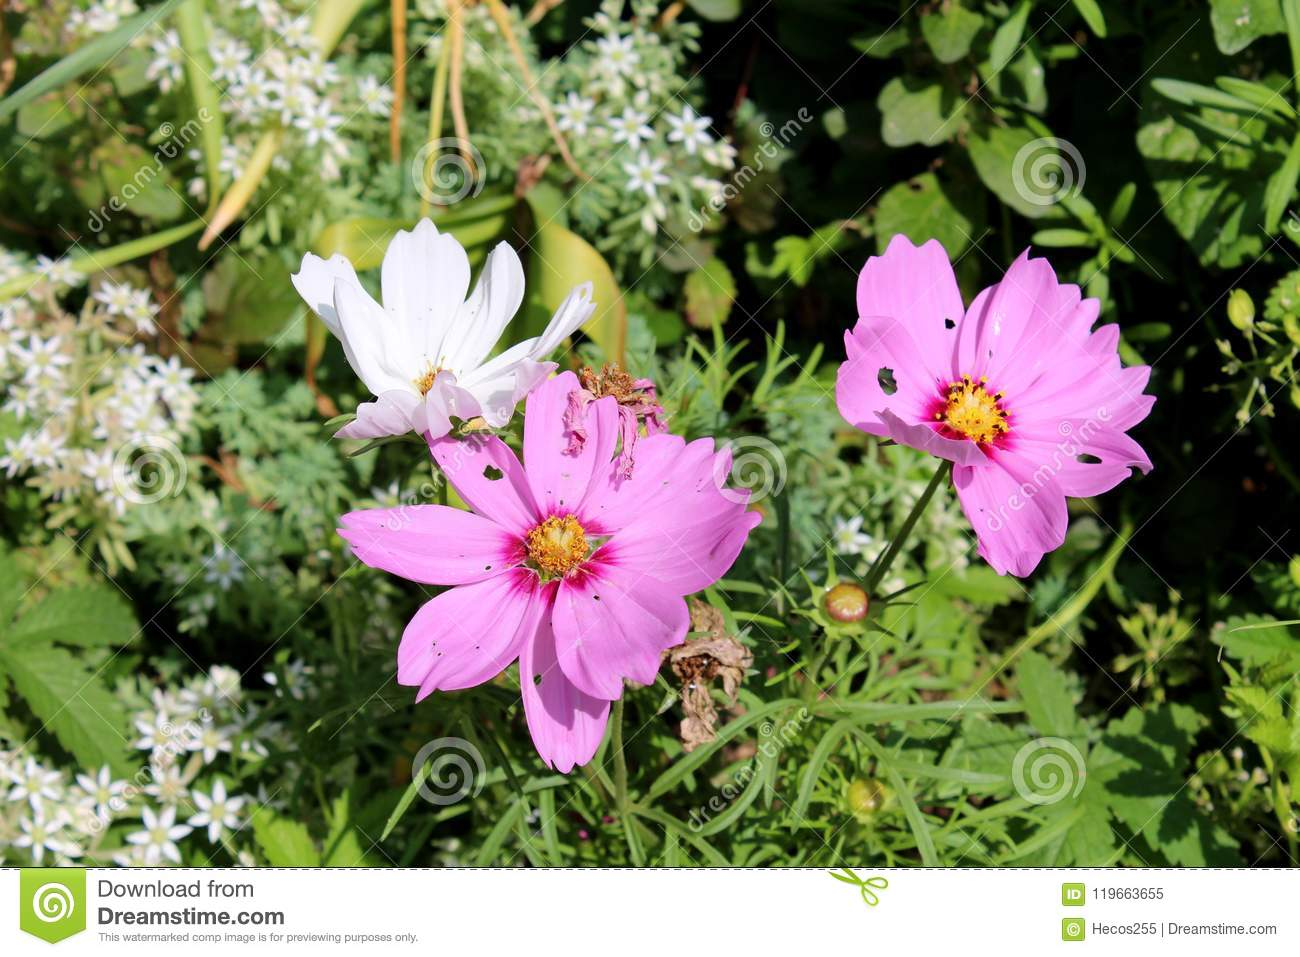 Garden cosmos or cosmos bipinnatus or mexican aster bright purple garden cosmos or cosmos bipinnatus or mexican aster bright purple and white half hardy annual fully blooming flowers with pointy leaves dried flowers and izmirmasajfo